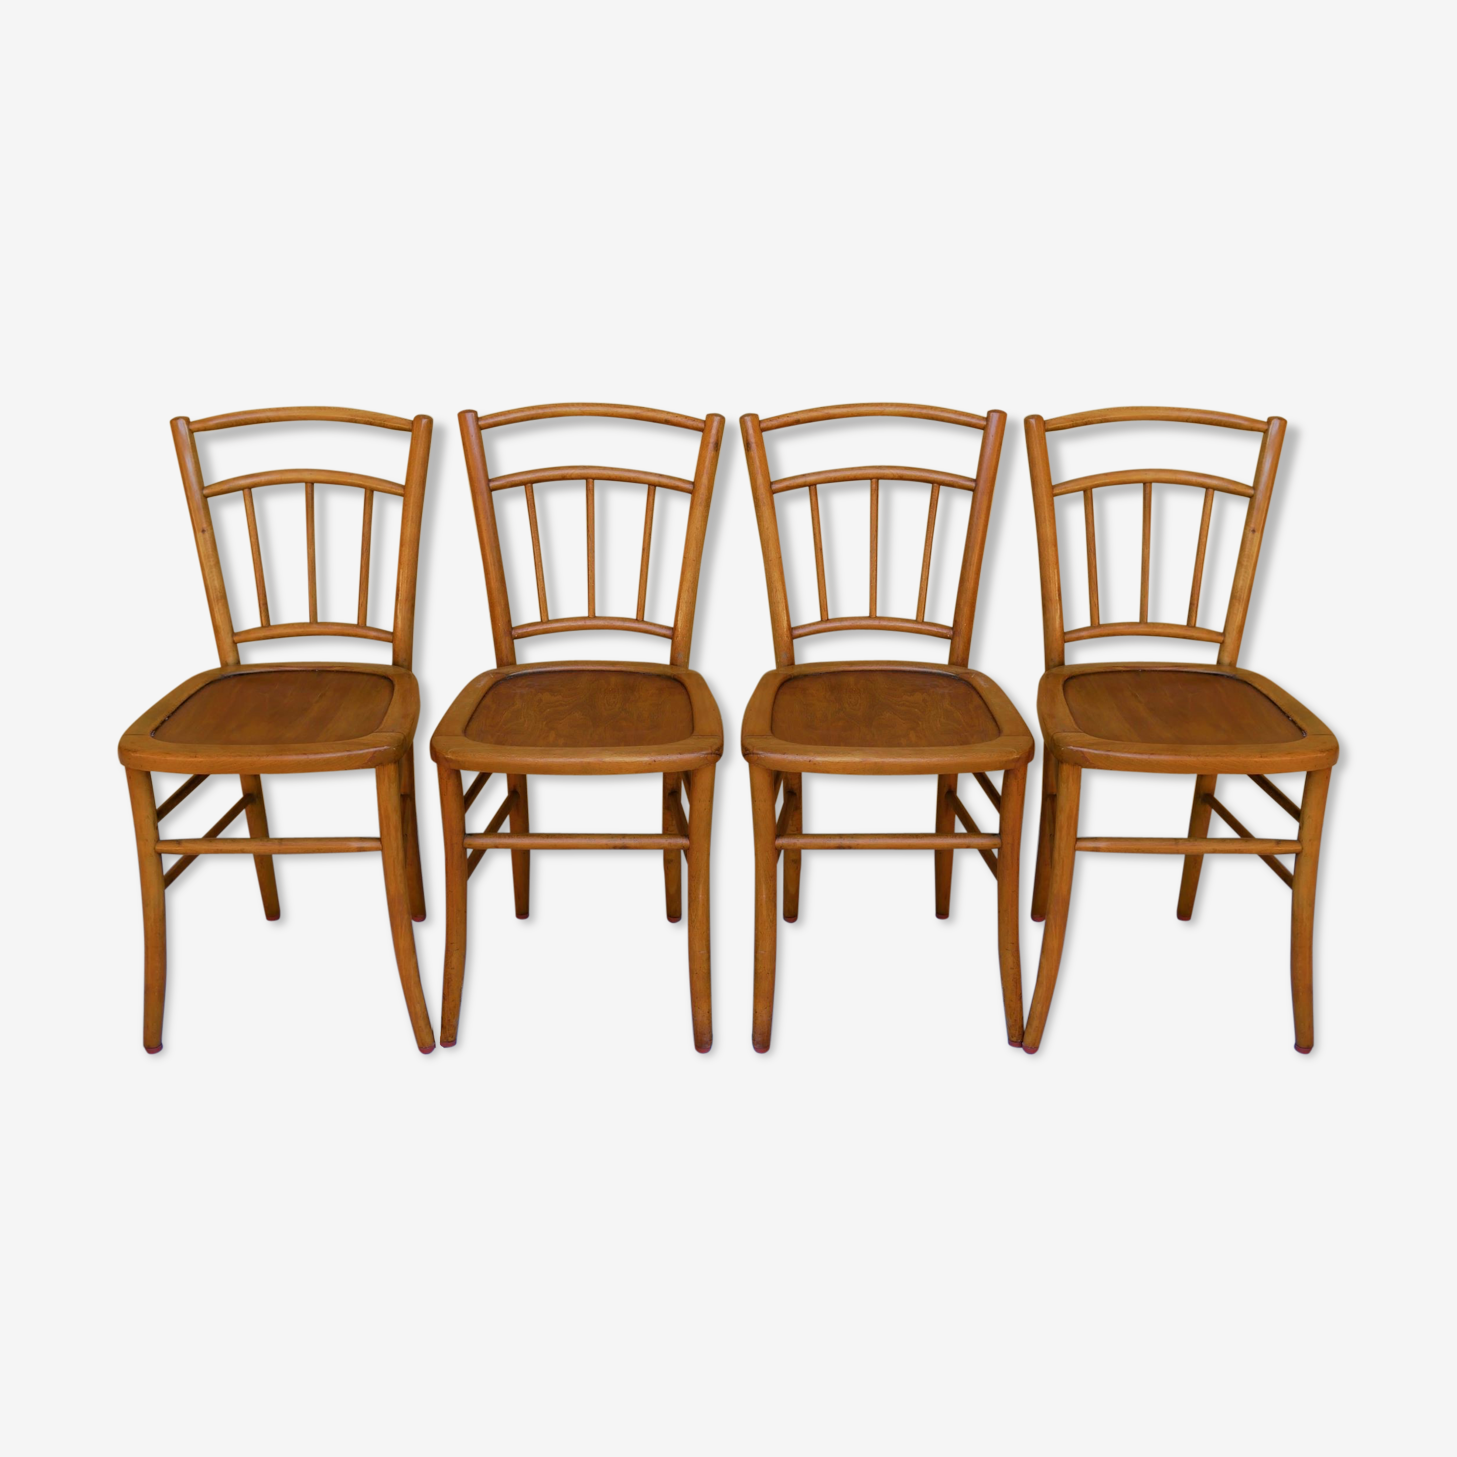 Set of 4 chairs with Luterma Bistro